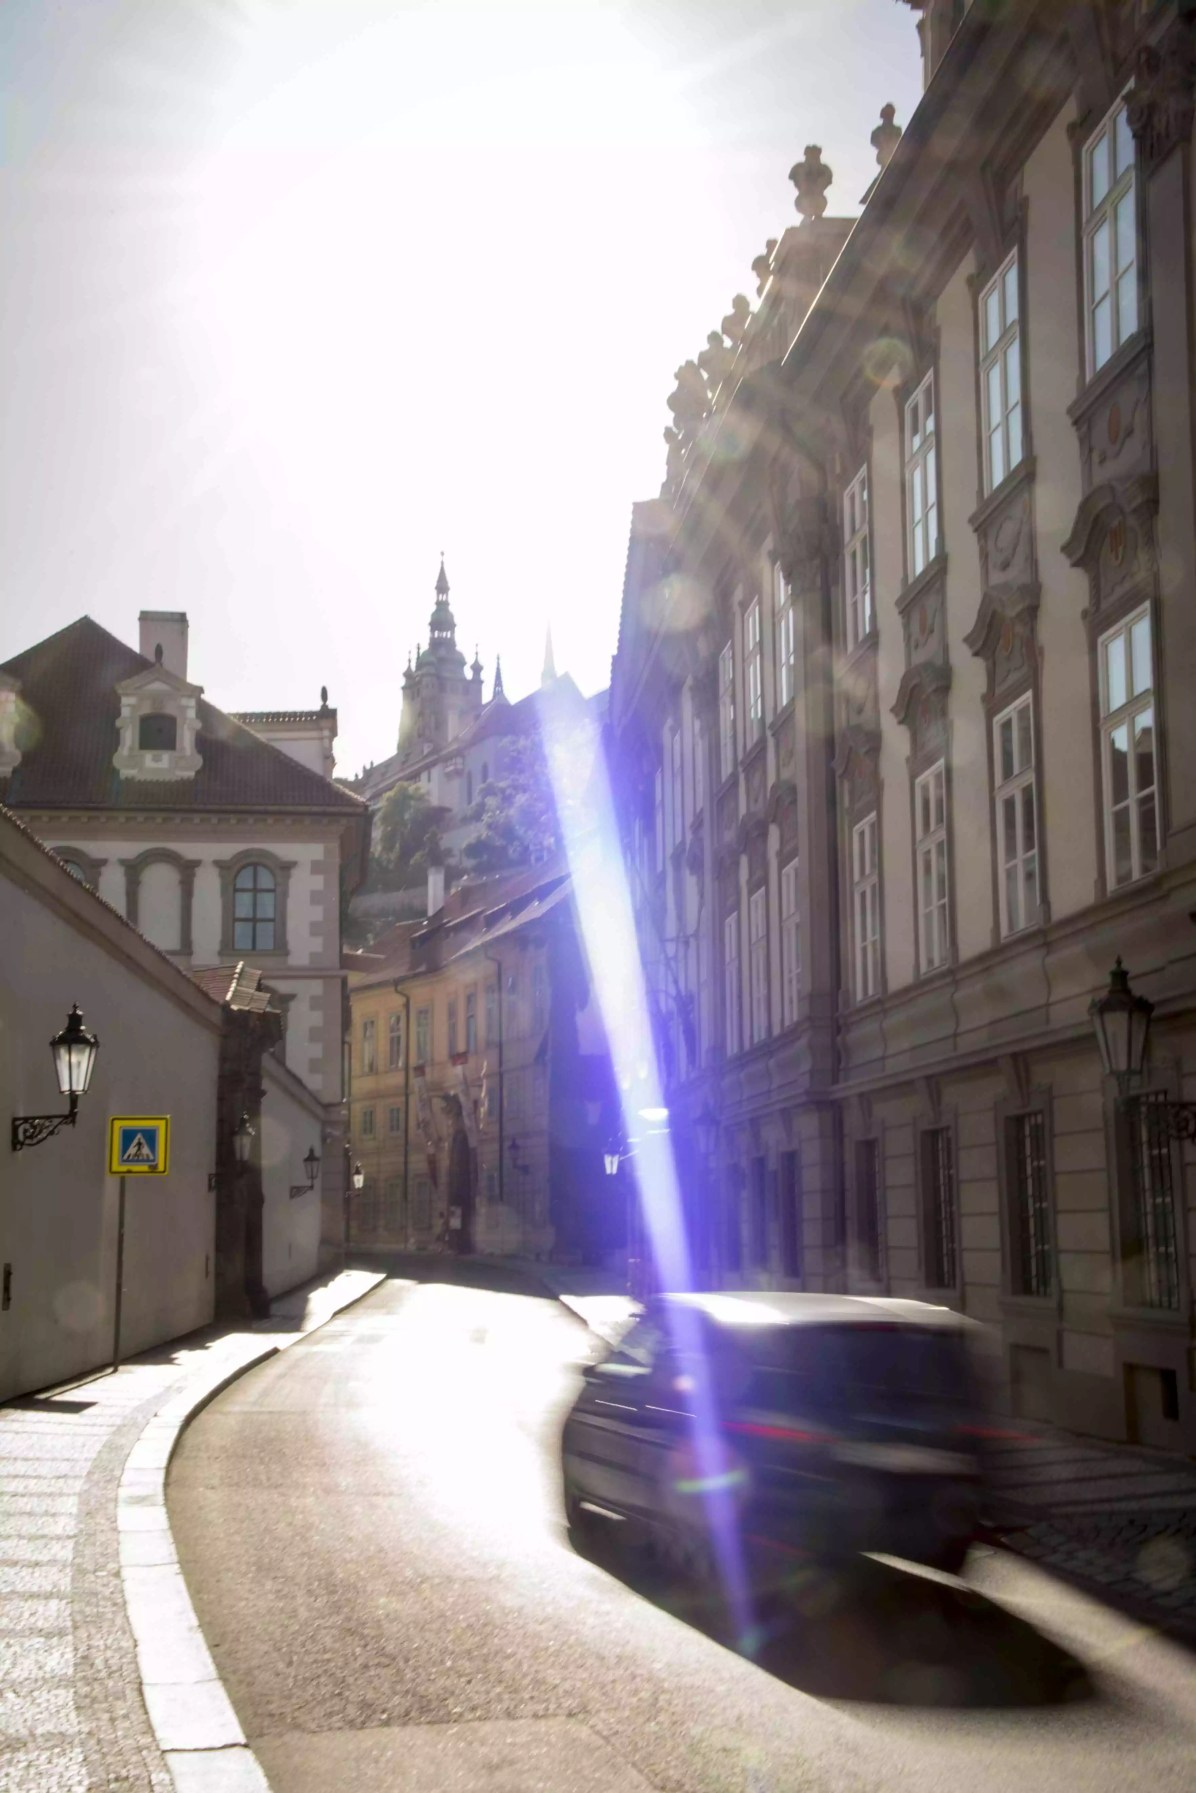 Drug Tourism - Prague is gorgeous, sober or not - Things to do in Prague - What to do in Prague